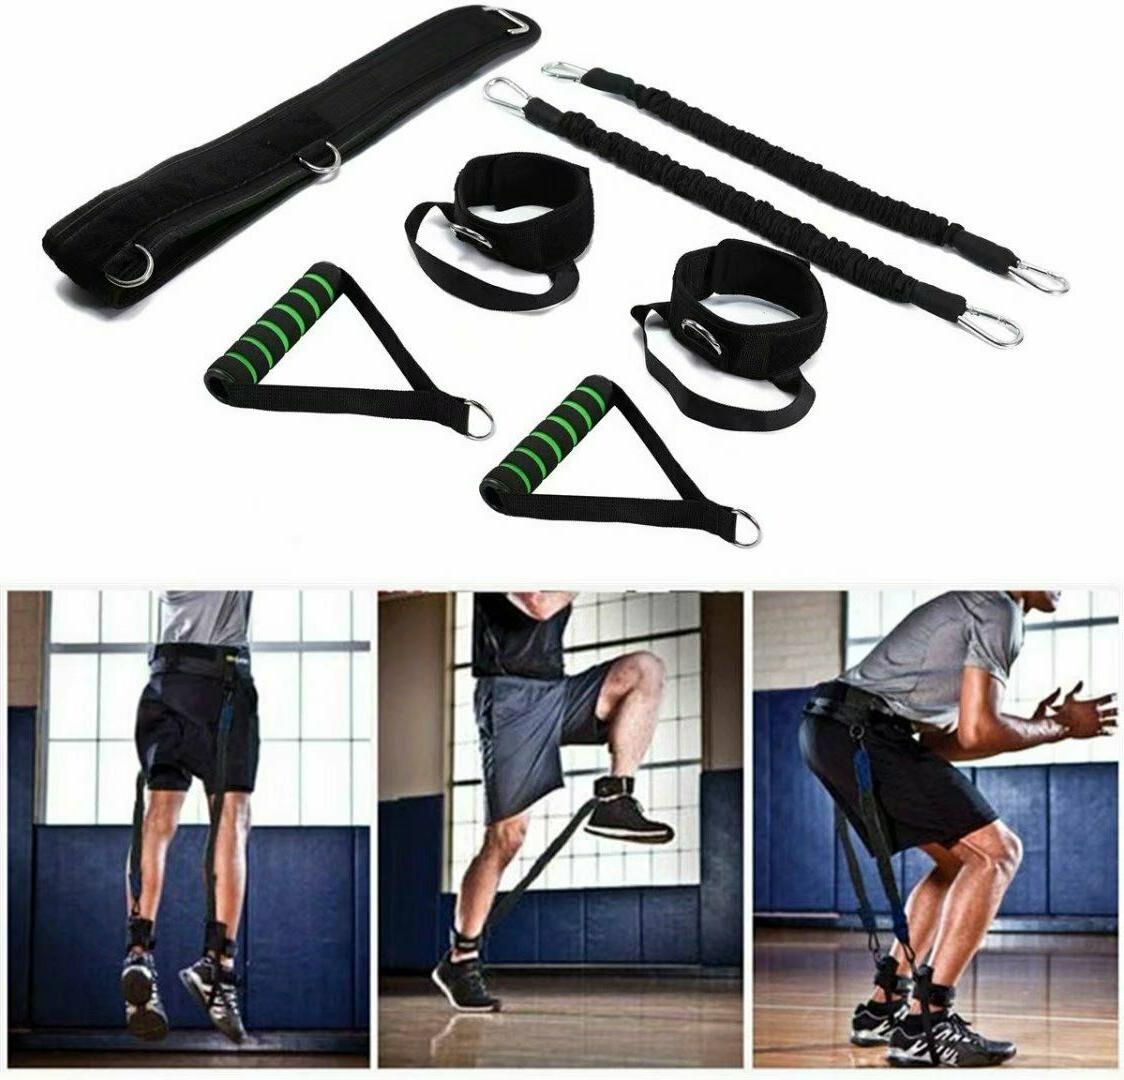 Vertical Trainer Jump Resistance System leaping